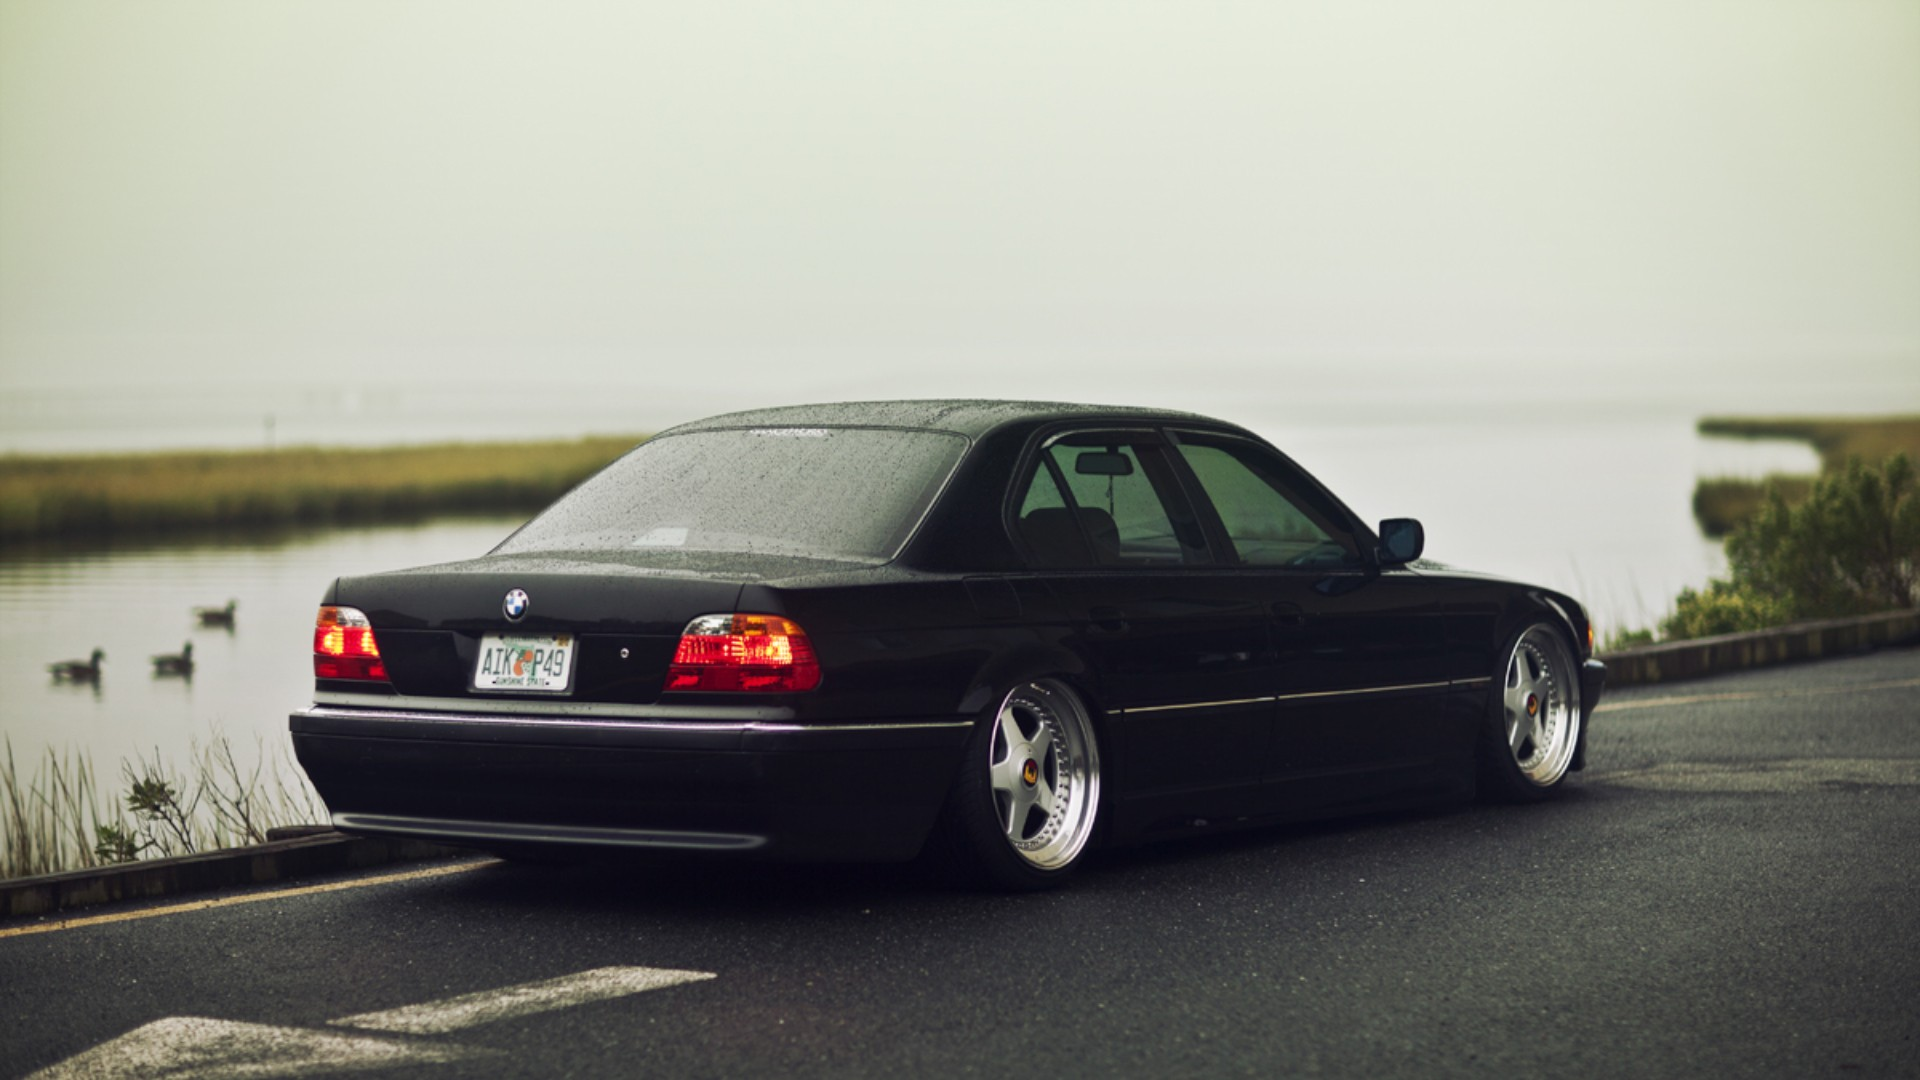 ... series, stance, StanceWorks, e28, camber, StanceNation :: Wallpapers